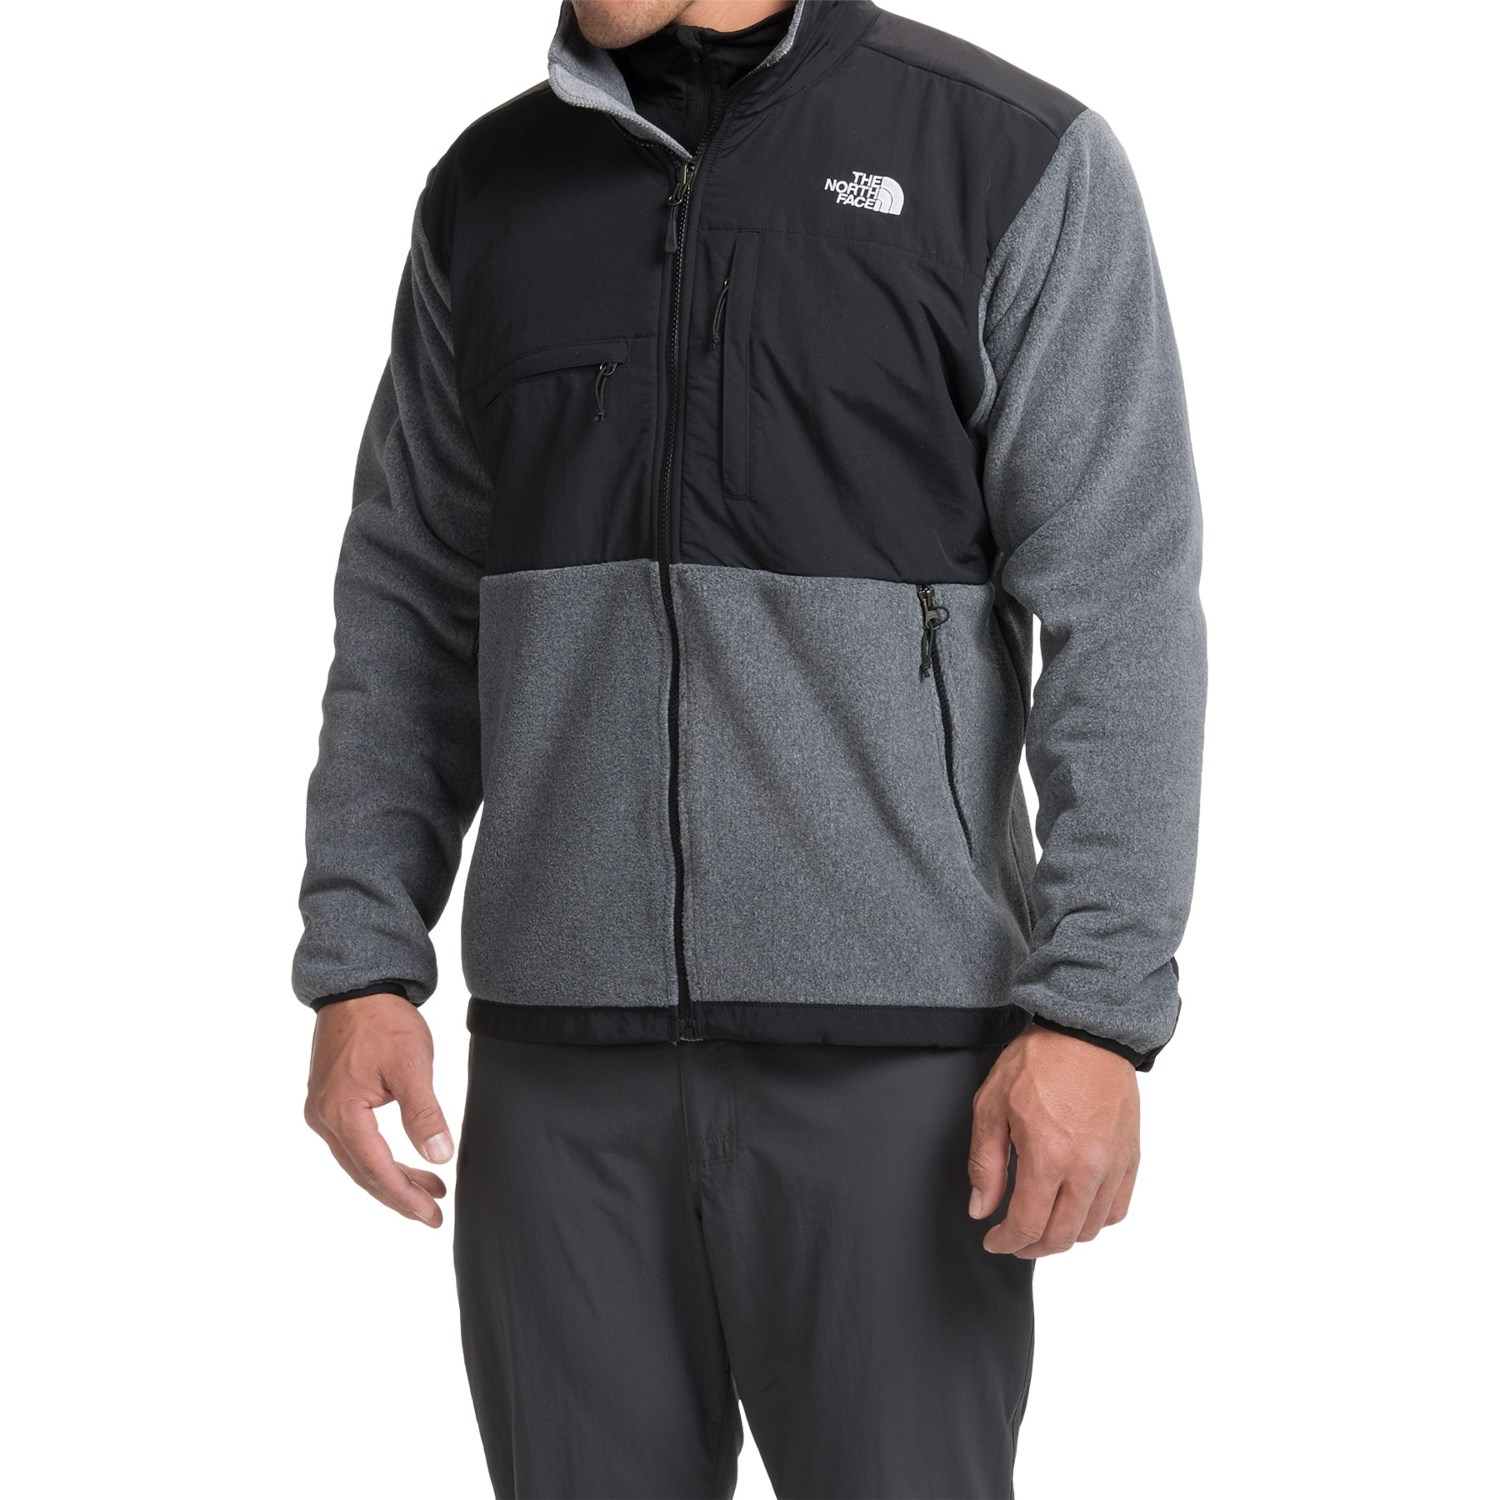 The North Face Denali Jacket (For Men)